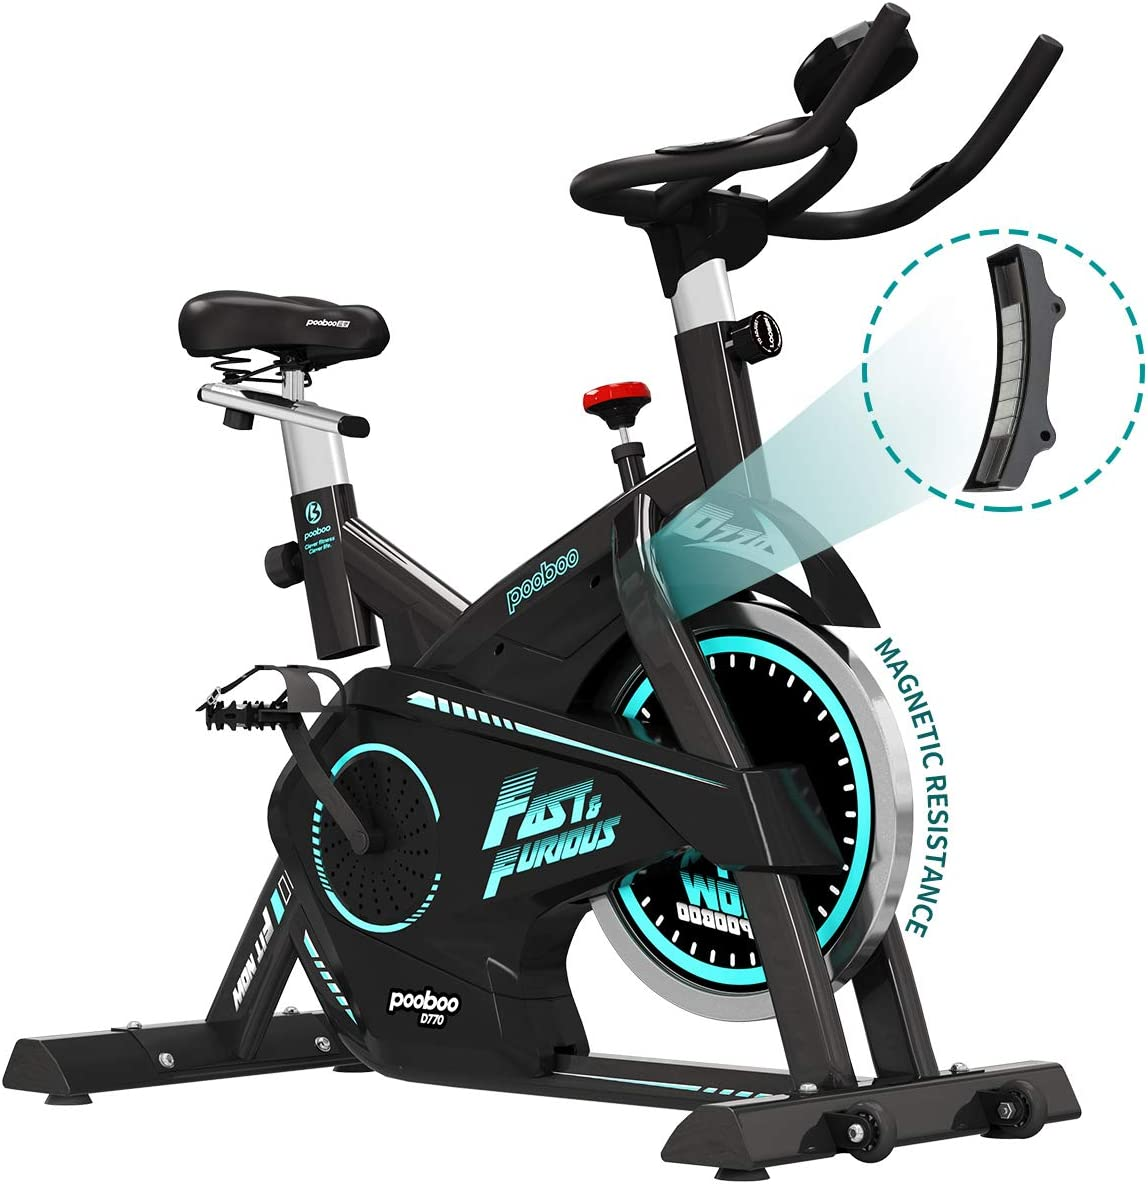 pooboo Belt Drive Indoor Cycling Bike